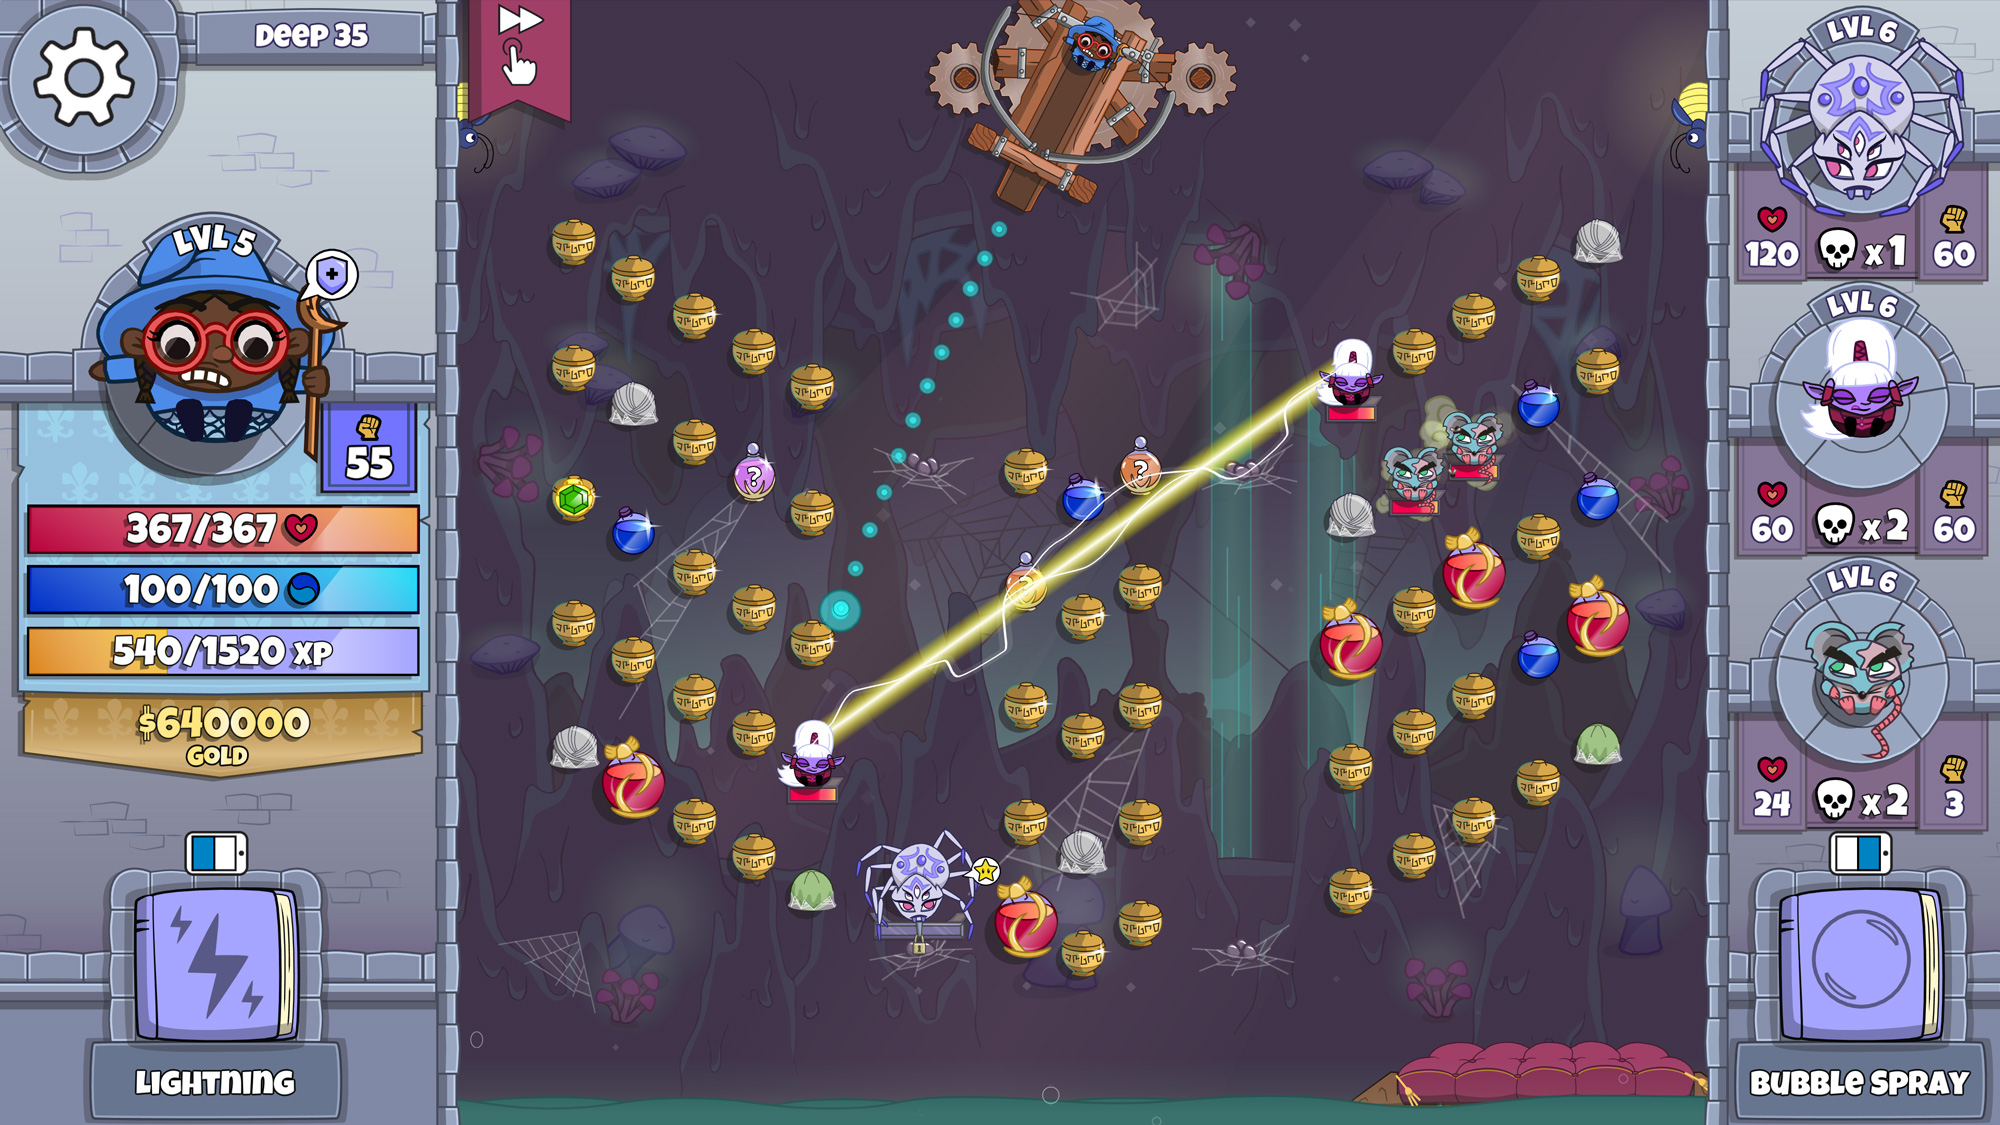 Peggle-like dungeon crawler 'Roundguard' is now available on Apple Arcade